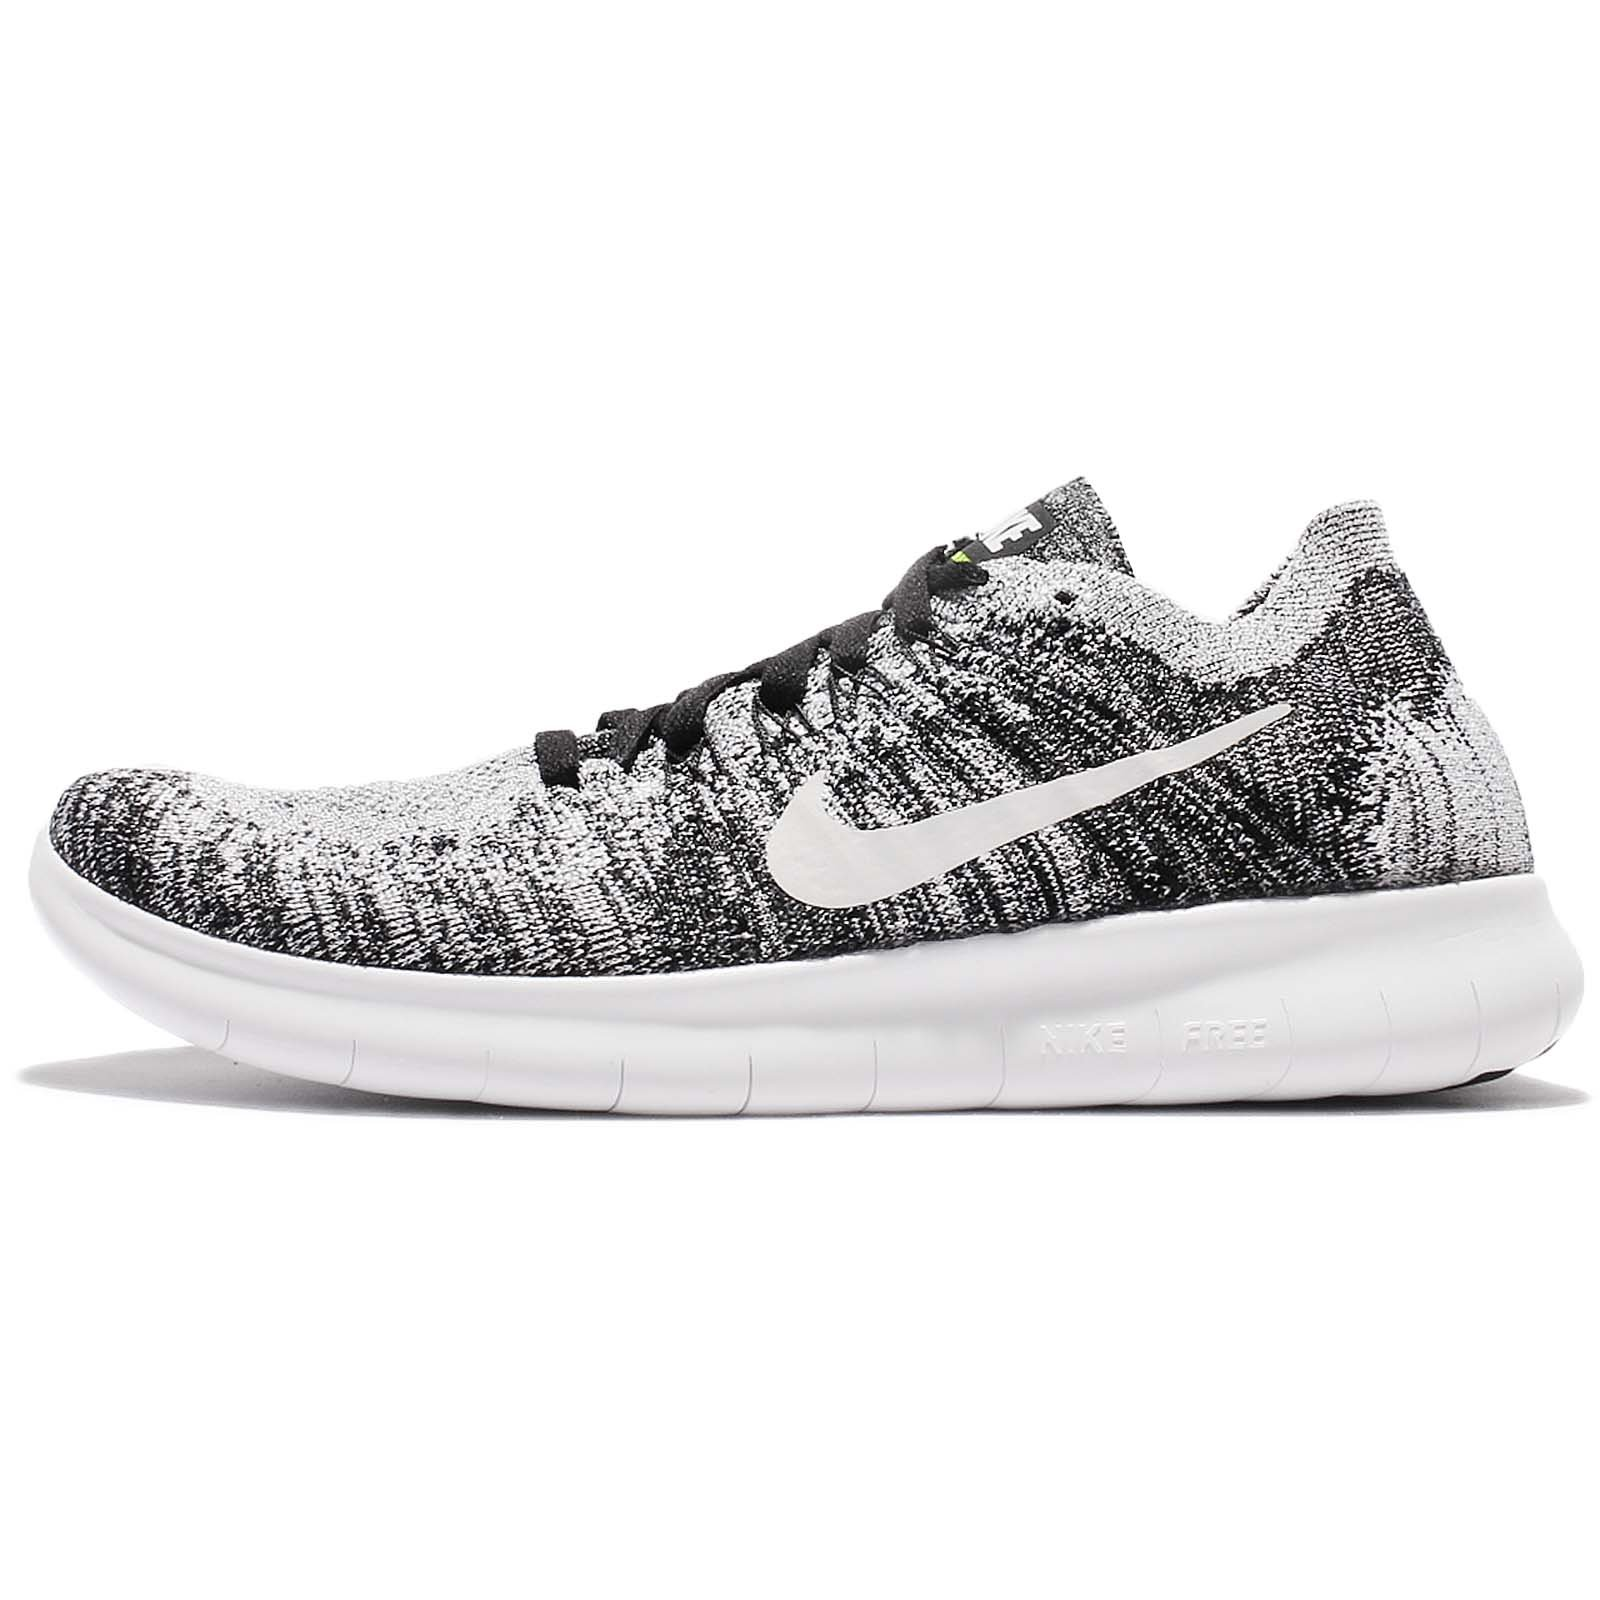 Nike Kids Free RN Flyknit 2017 GS, Black/White-Volt, Youth Size 5